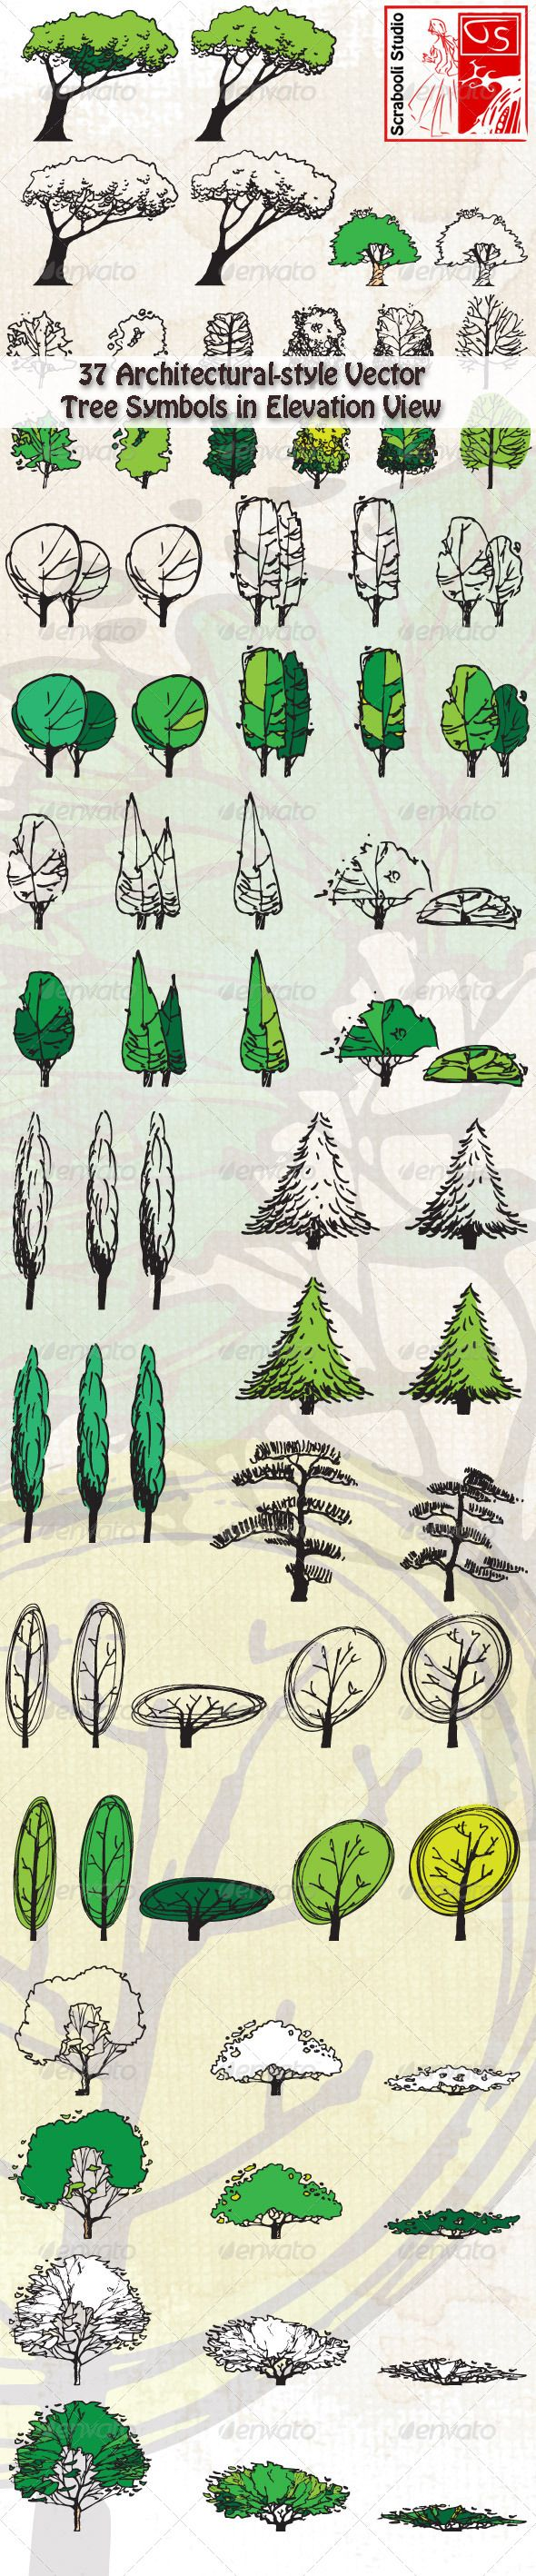 Trees in Elevation View